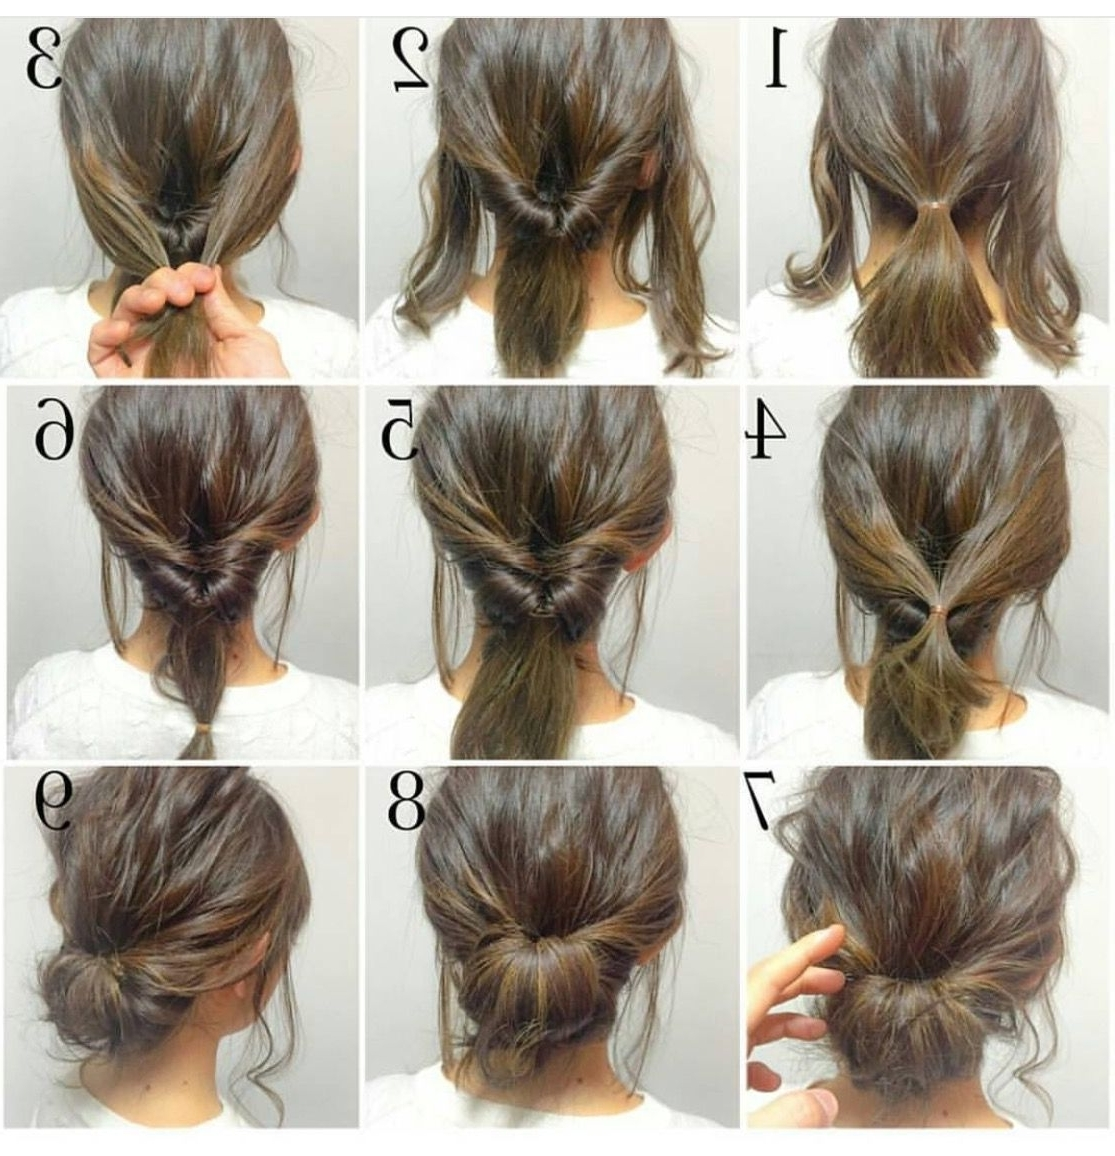 Easy, Hope This Works Out Quick Morning Hair! | • H A I R With Regard To Easy Updo Hairstyles For Short Hair (View 7 of 15)